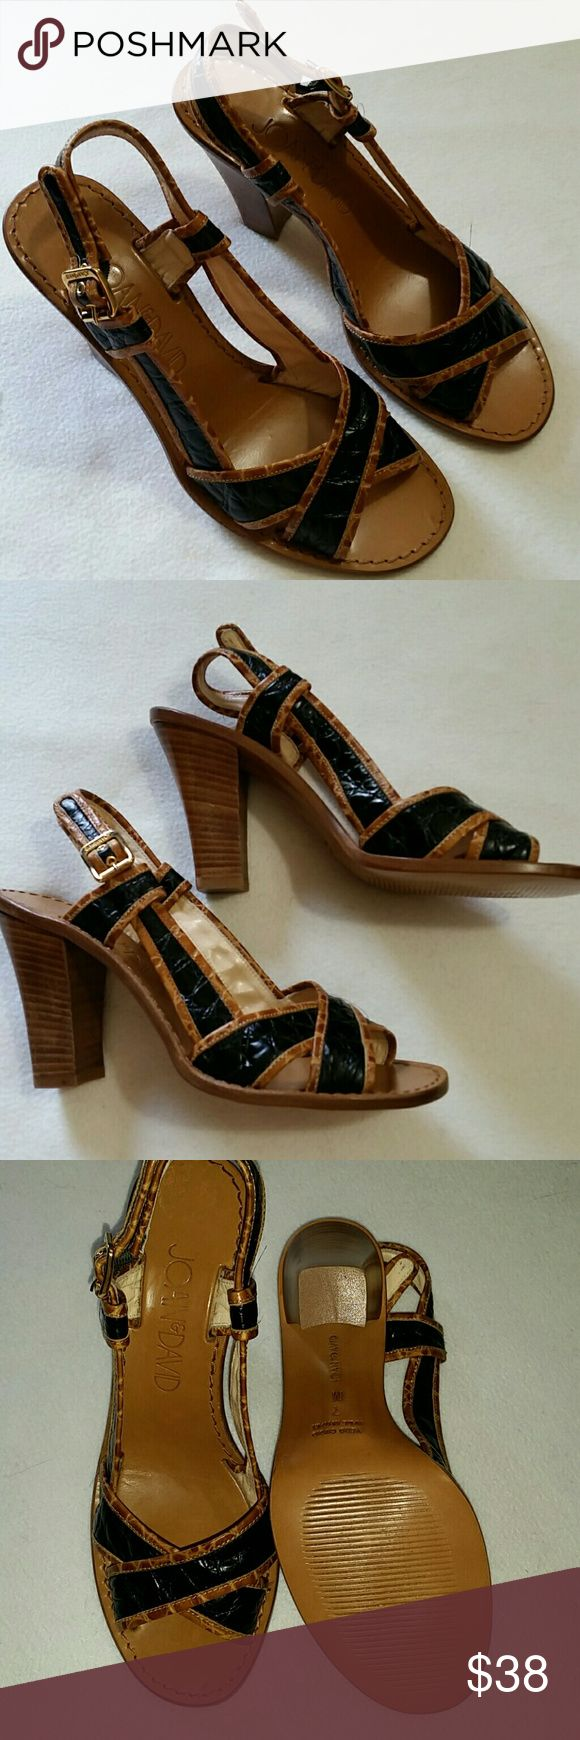 Joan & David shoes Beautiful,  brown and navy blue sandals by Joan & David.  In great condition,  barely worn.  Buckle strap,  heels measures approximately 3.5 inches. Joan & David Shoes